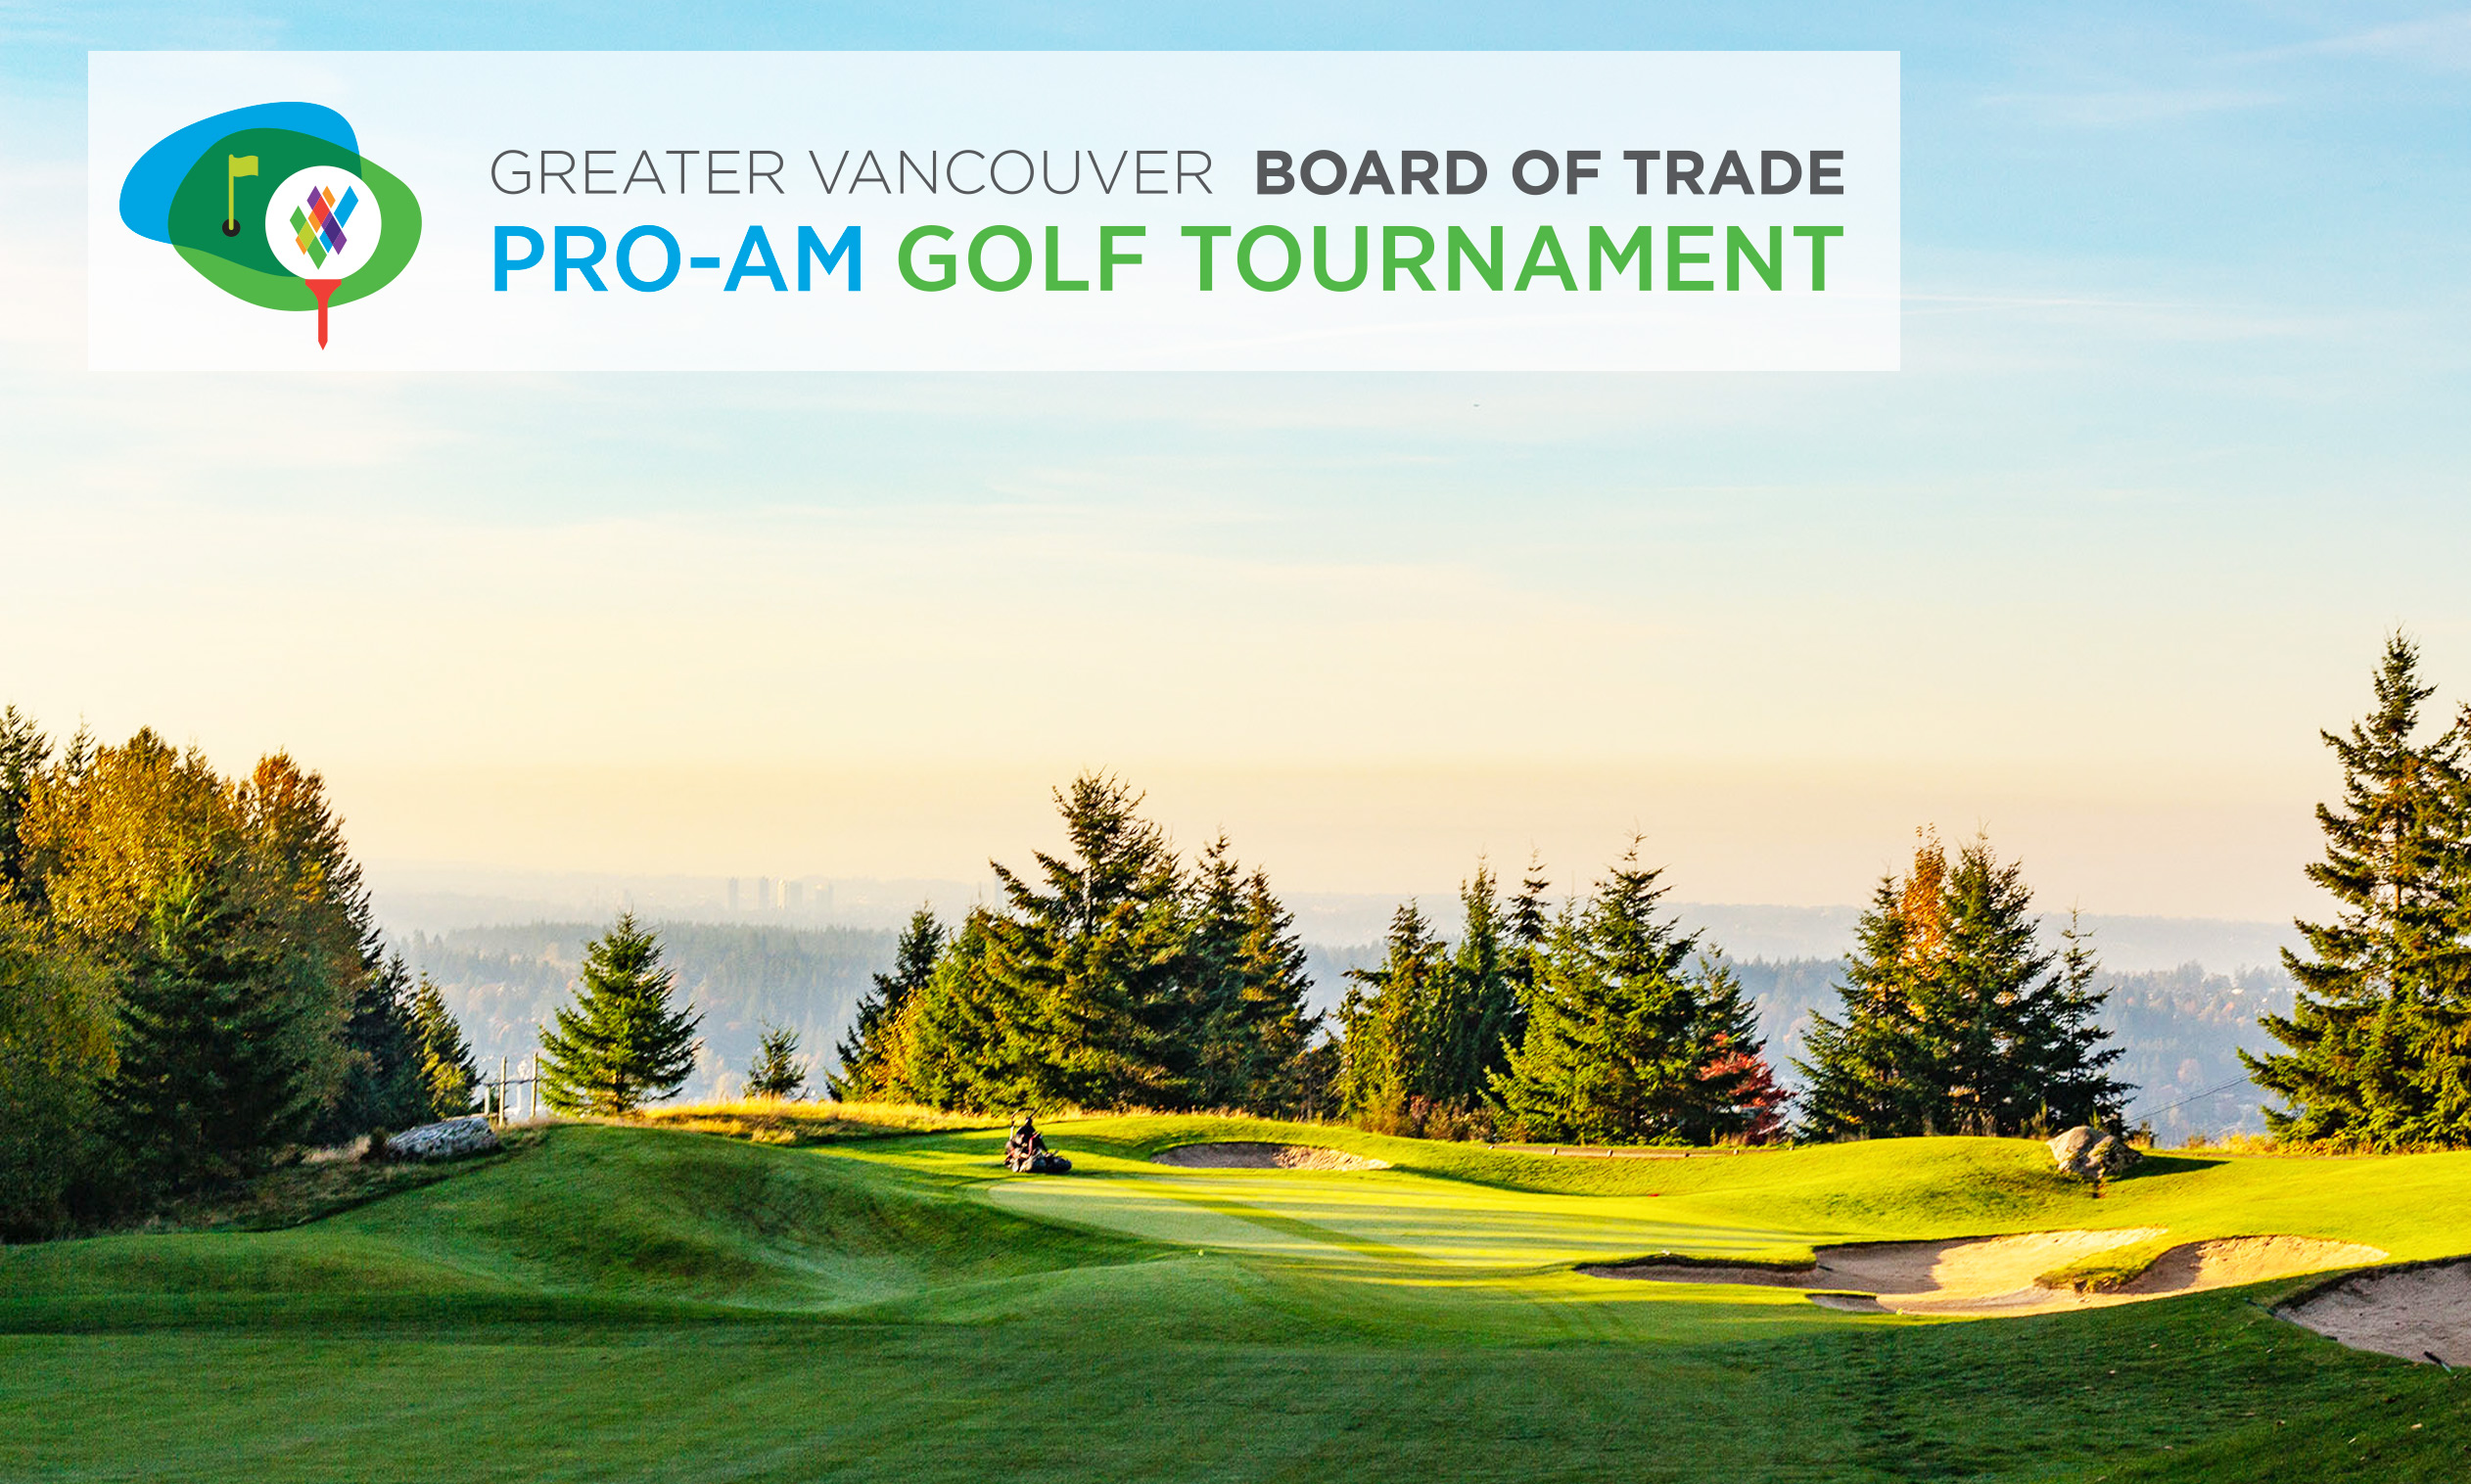 GVBOT Pro-Am Golf Tournament 2020